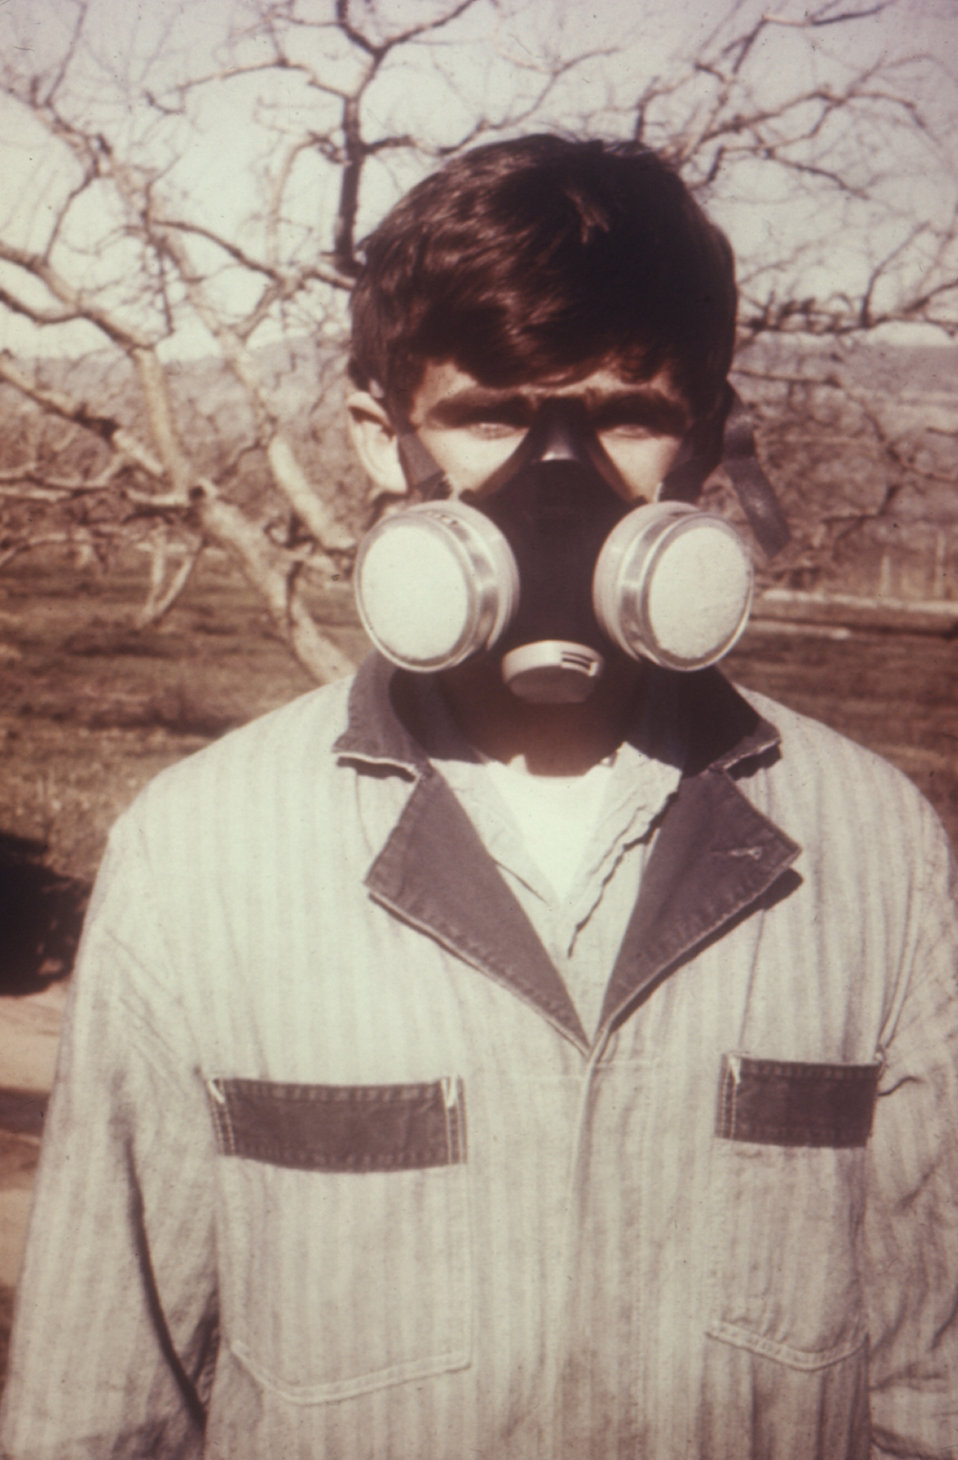 This individual was demonstrating the types of protective clothing worn by pesticide workers during the 1970's.